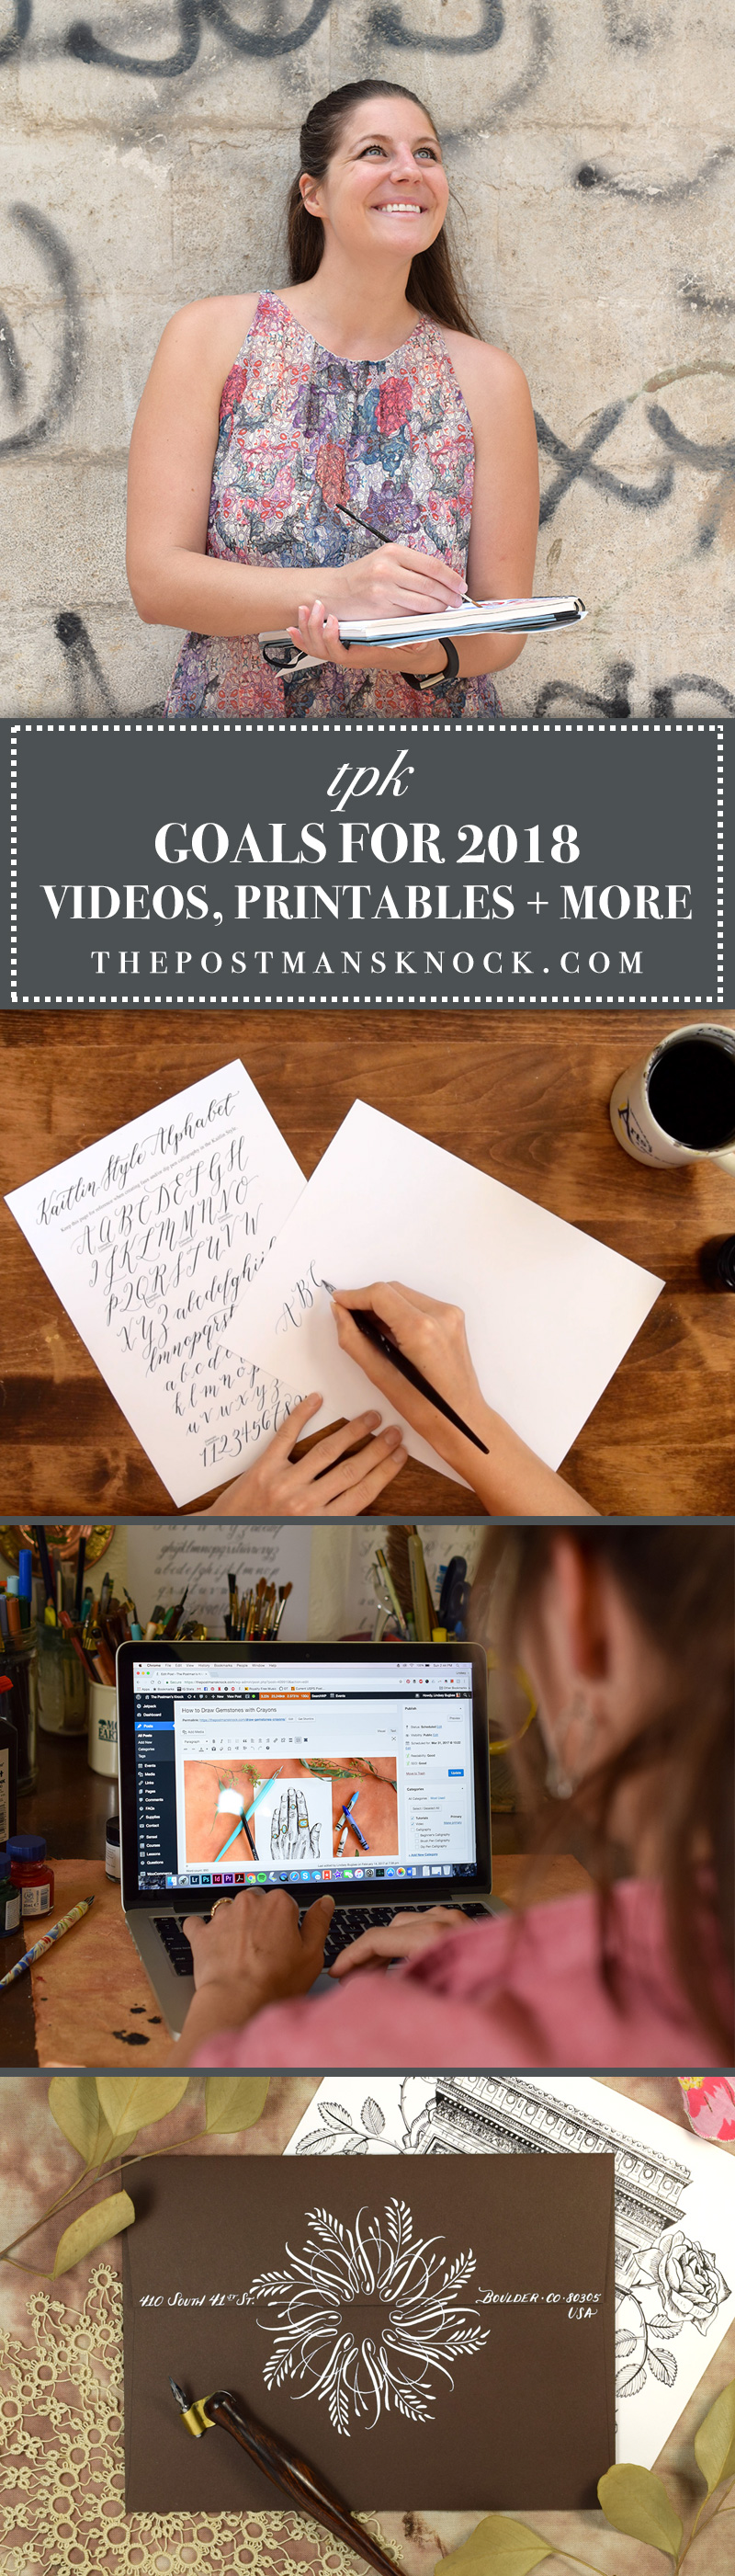 What I'm Working on in 2018 | The Postman's Knock